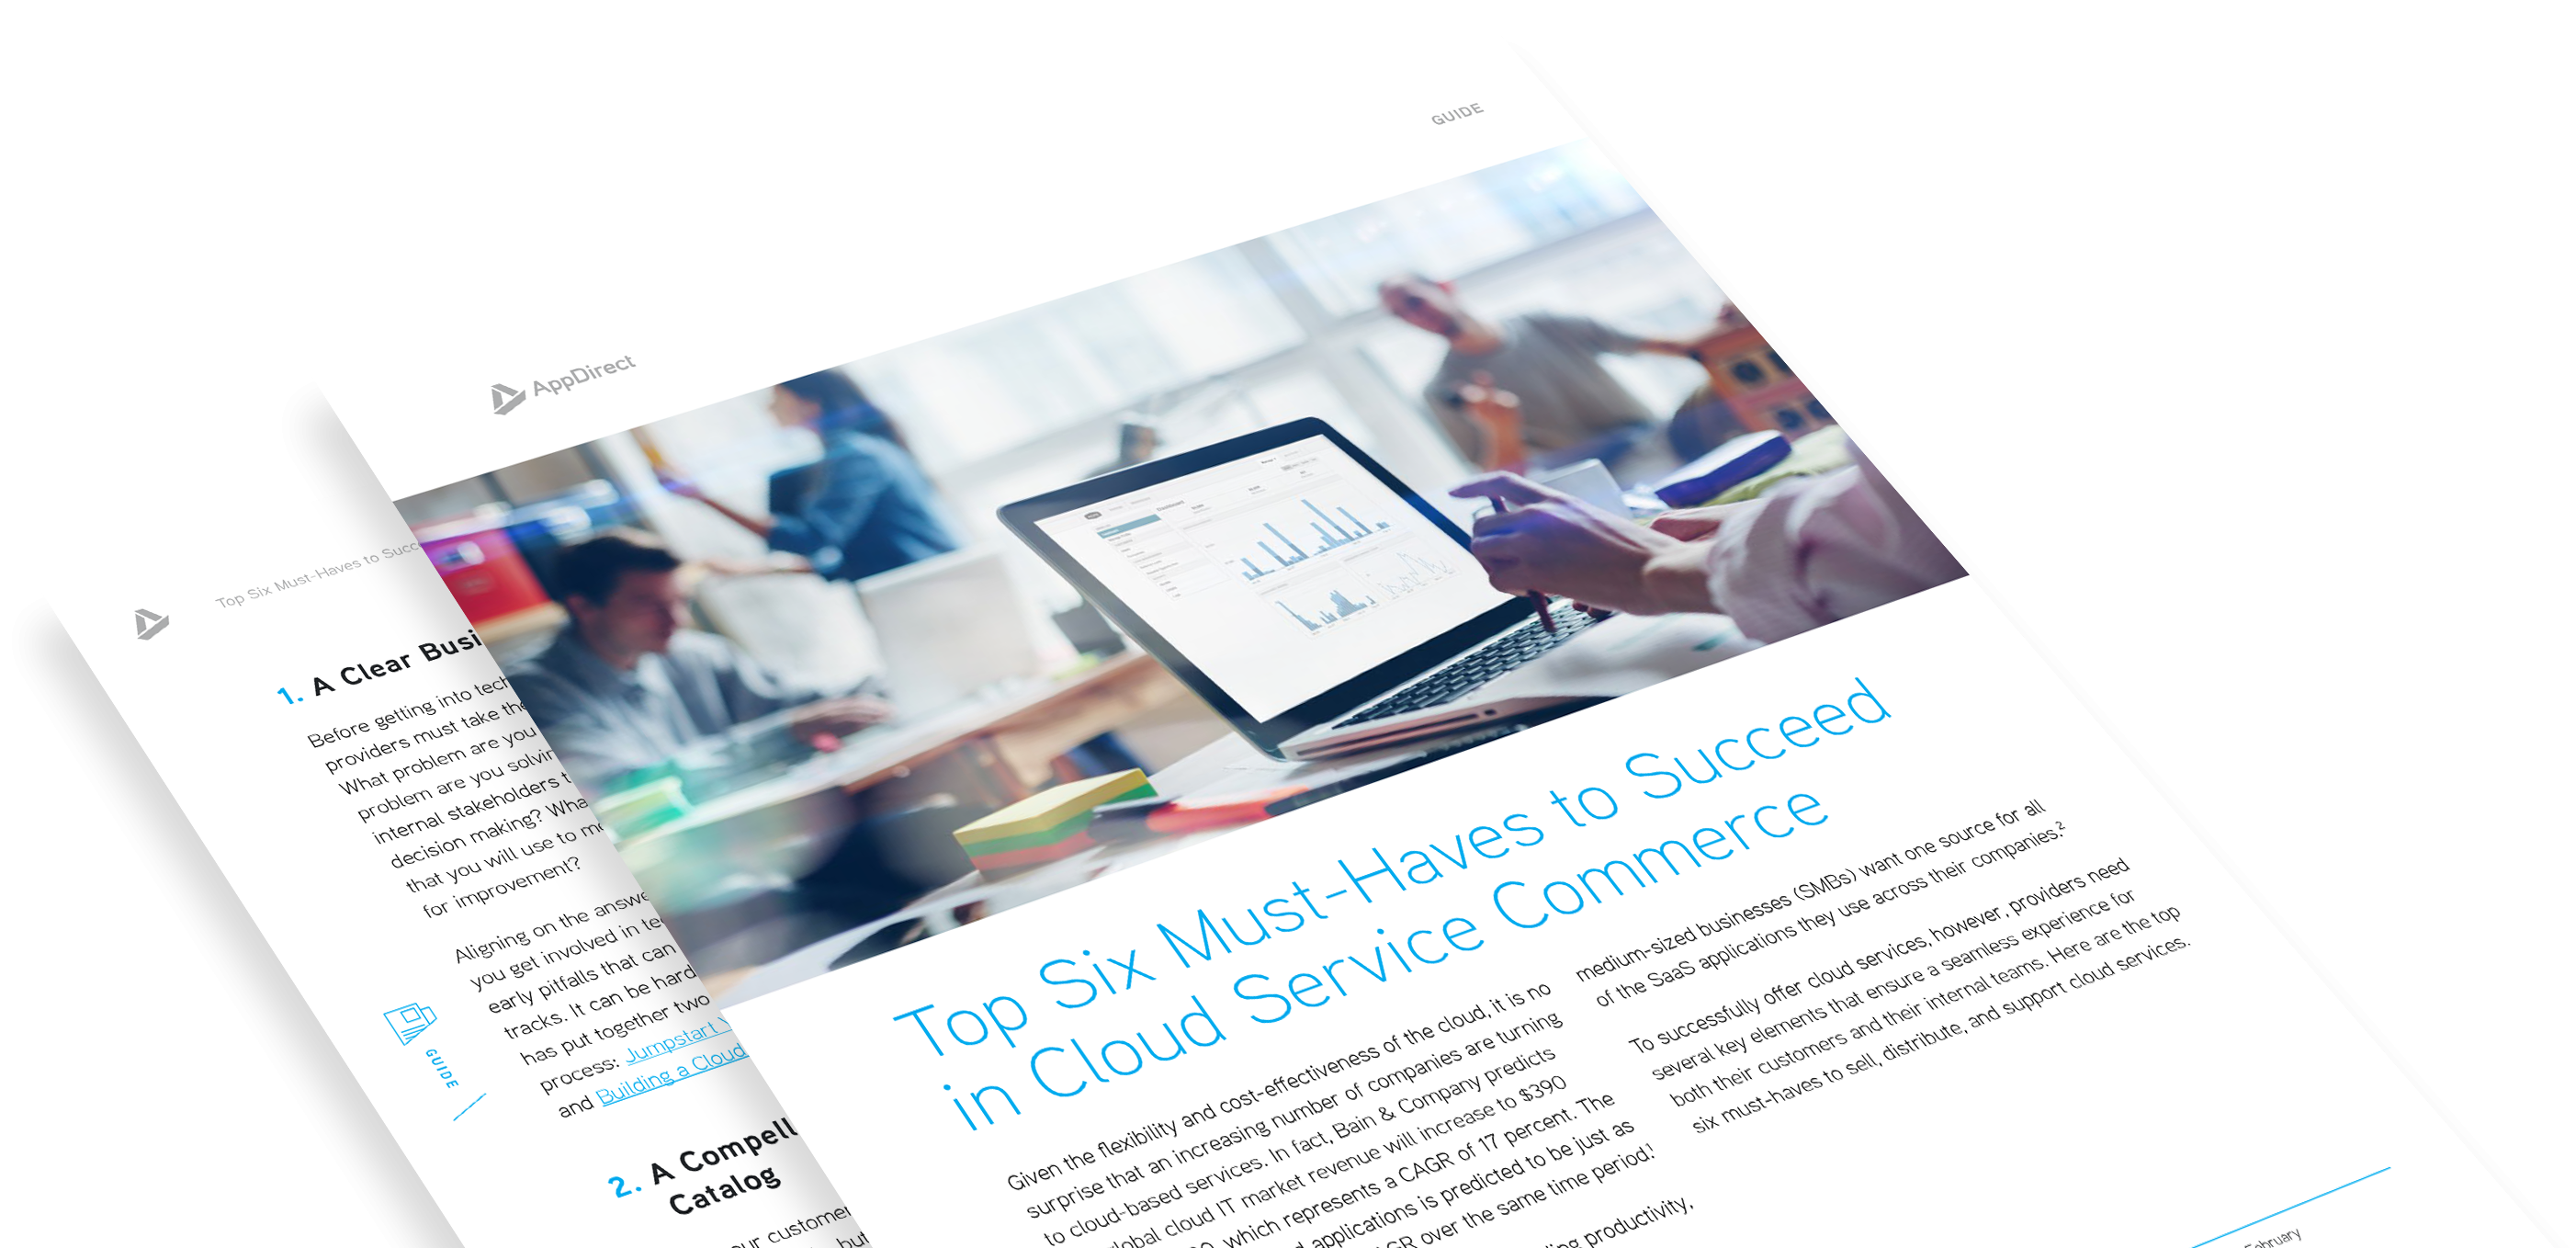 Top 6 Must-Haves to Succeed in Cloud Service Commerce